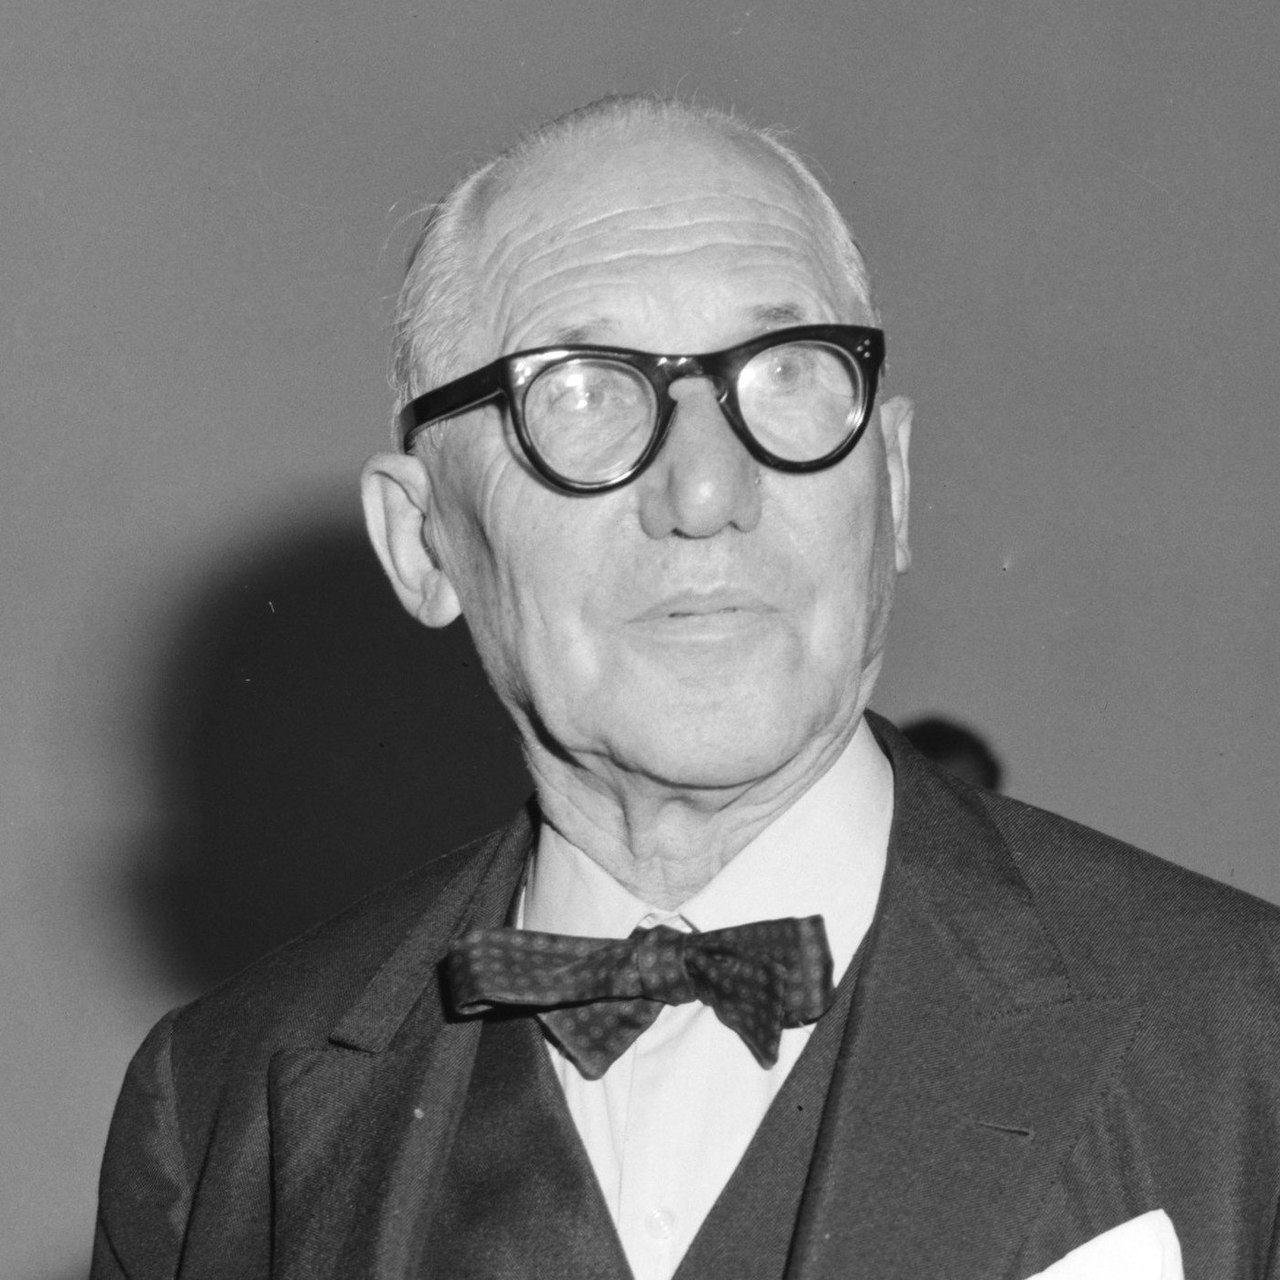 Le Corbusier (1887-1967) was a highly influential Swiss-French architect, artist, writer and urban planner. His contributions to urban planning were centred around restructuring crowded cities to improve the living conditions of residents in an efficient and replicable way.